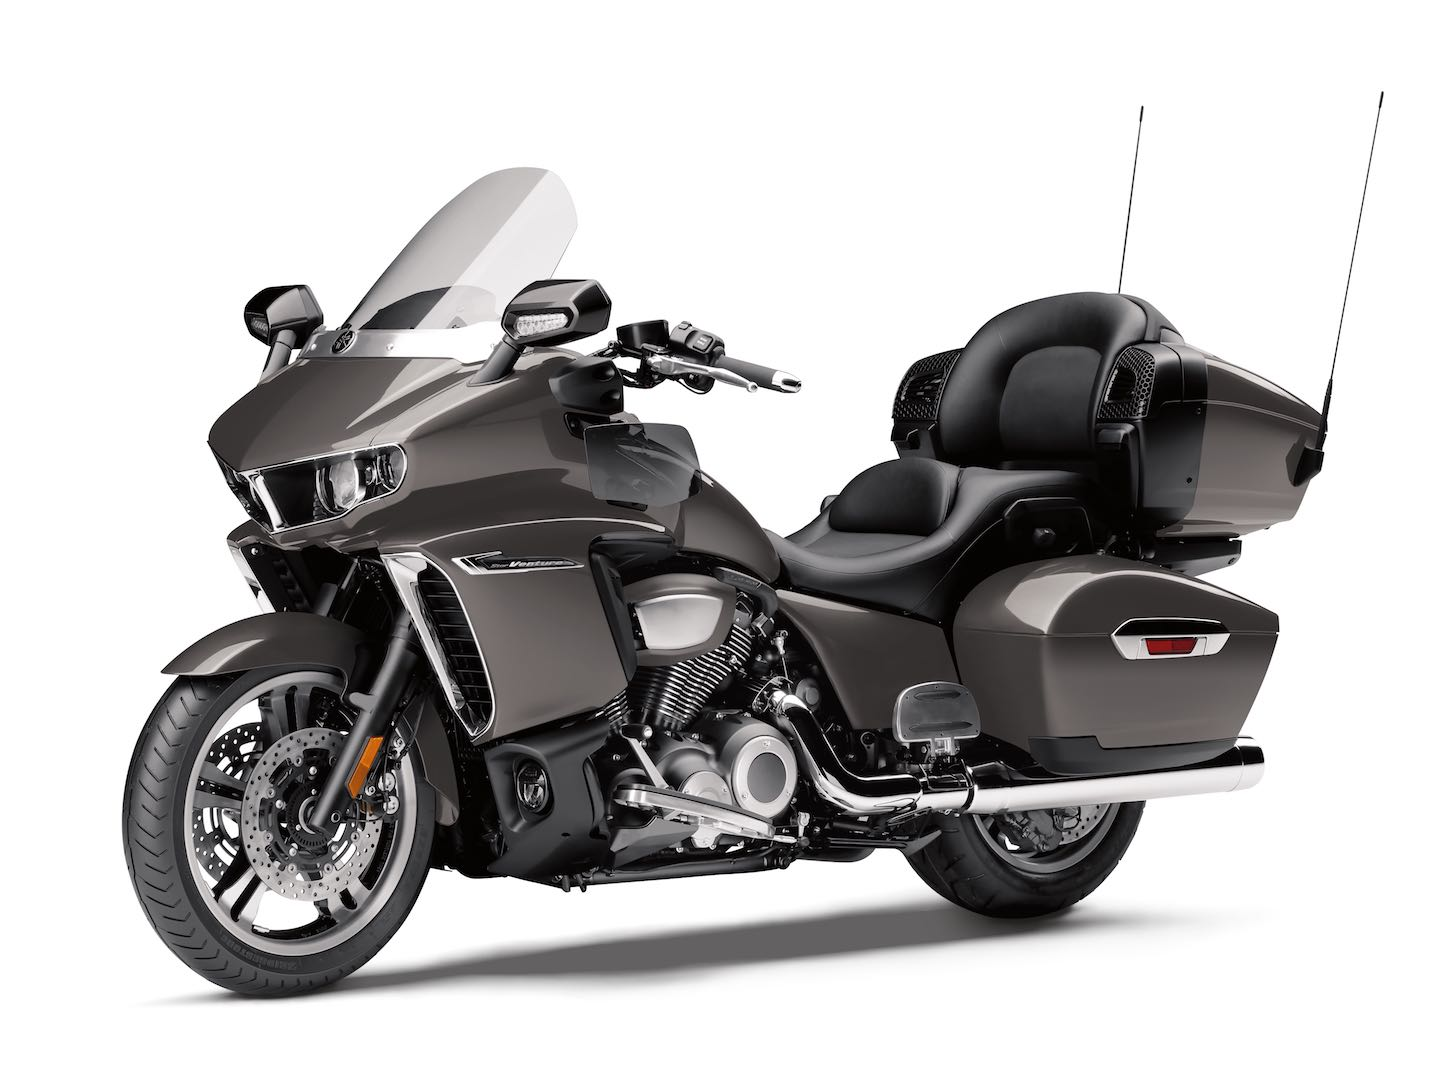 2018 yamaha star venture preview 14 fast facts. Black Bedroom Furniture Sets. Home Design Ideas